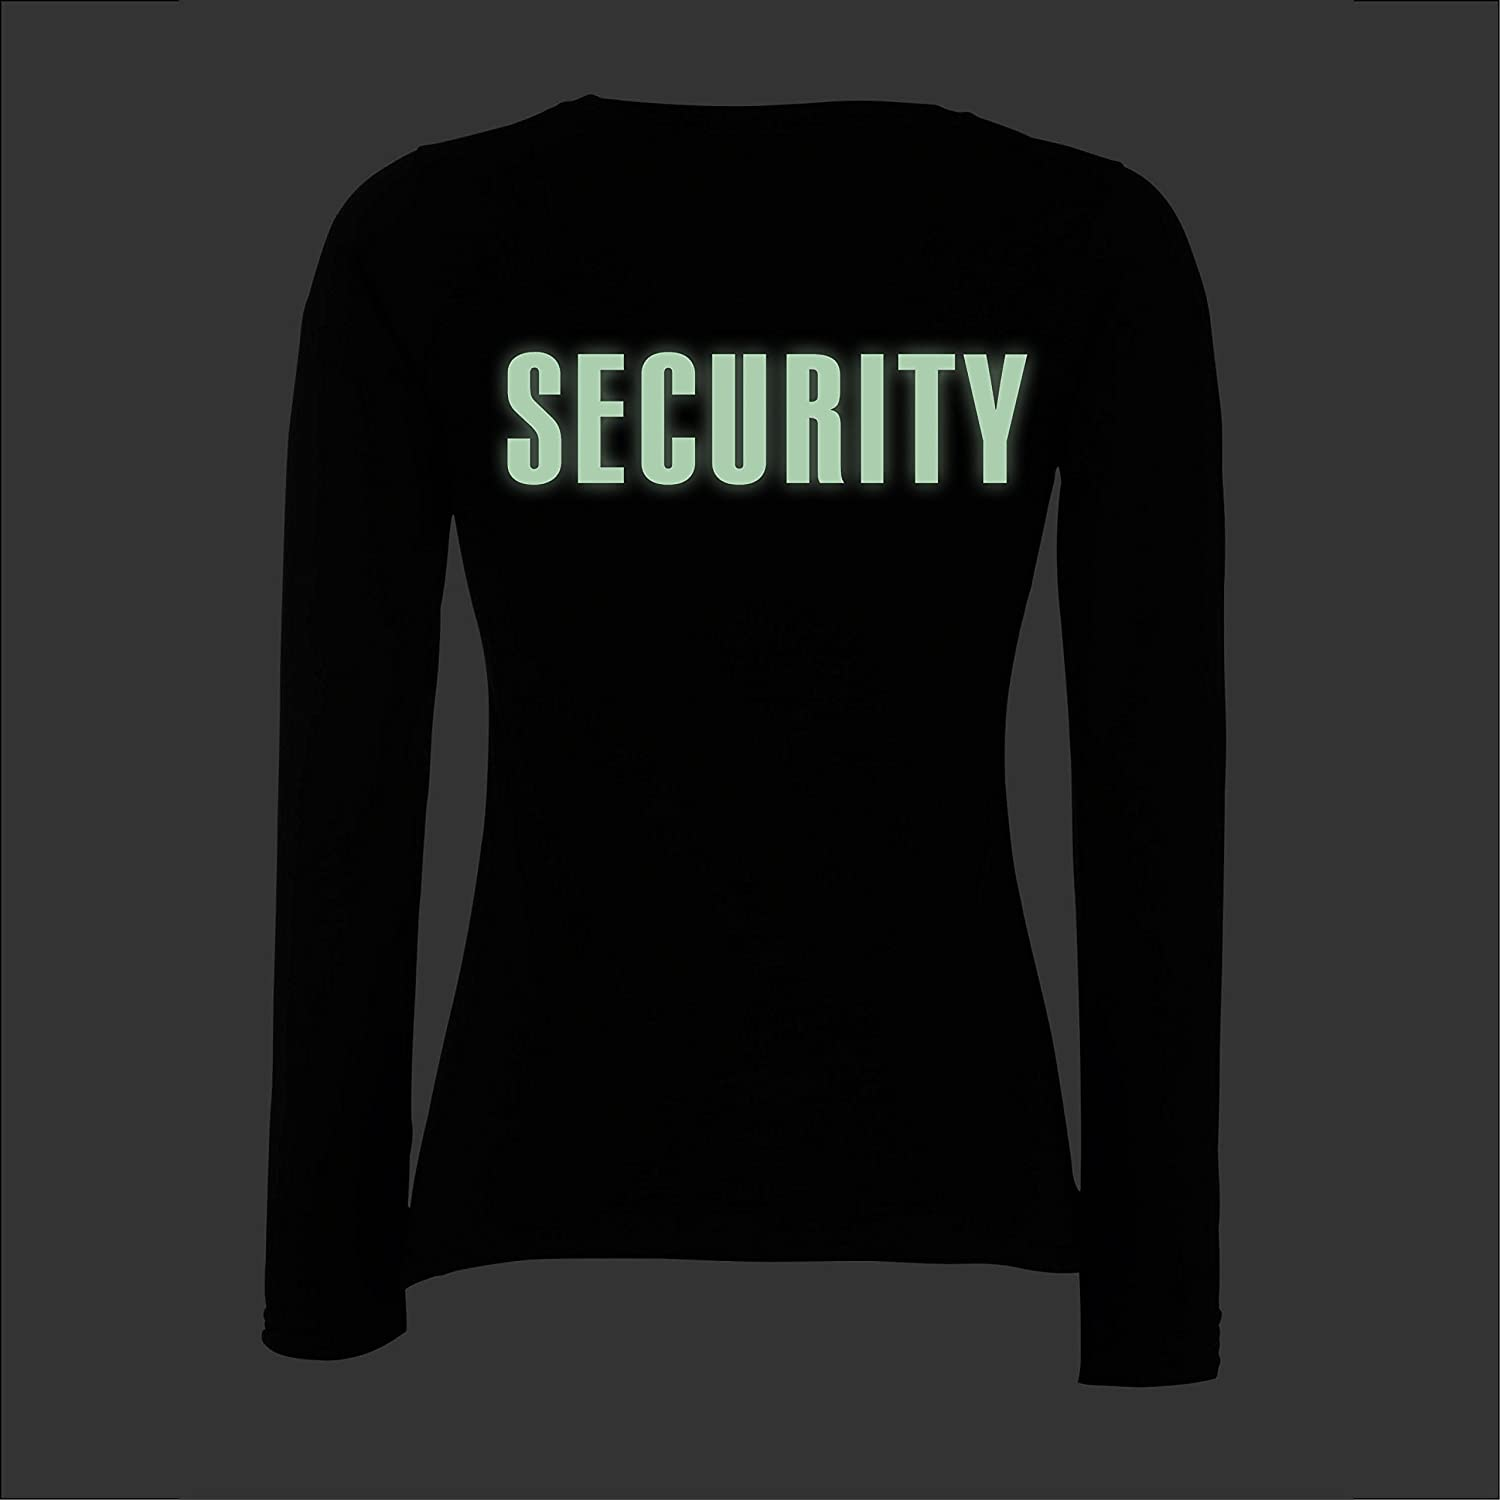 Bodyguard Crew Event Staff and Party lepni.me Women/'s T-Shirt Security